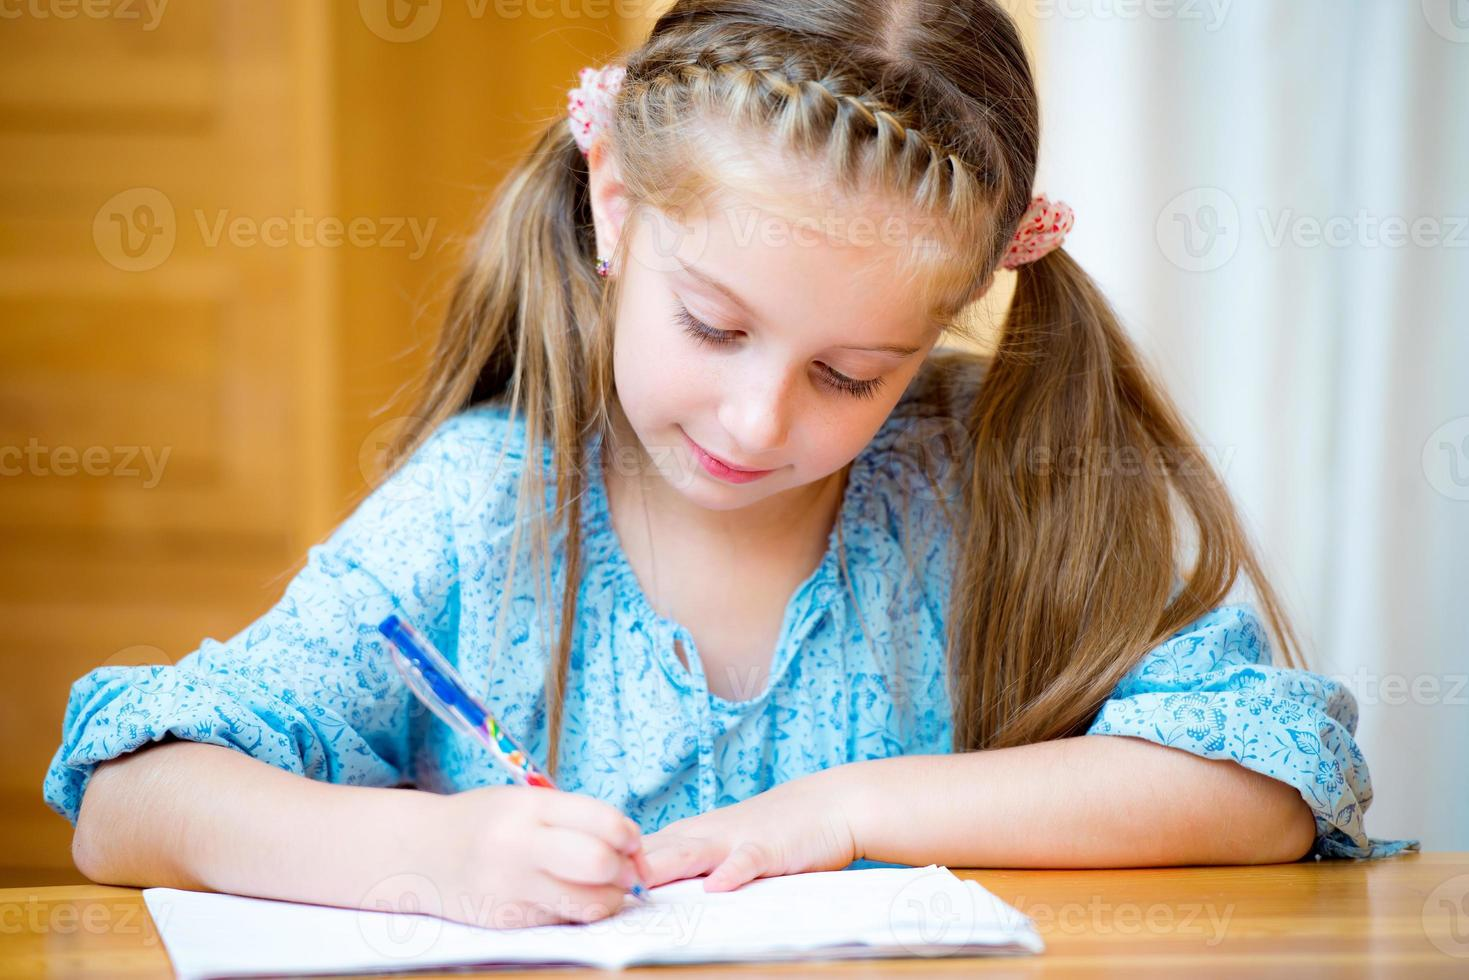 Cute little girl studying photo